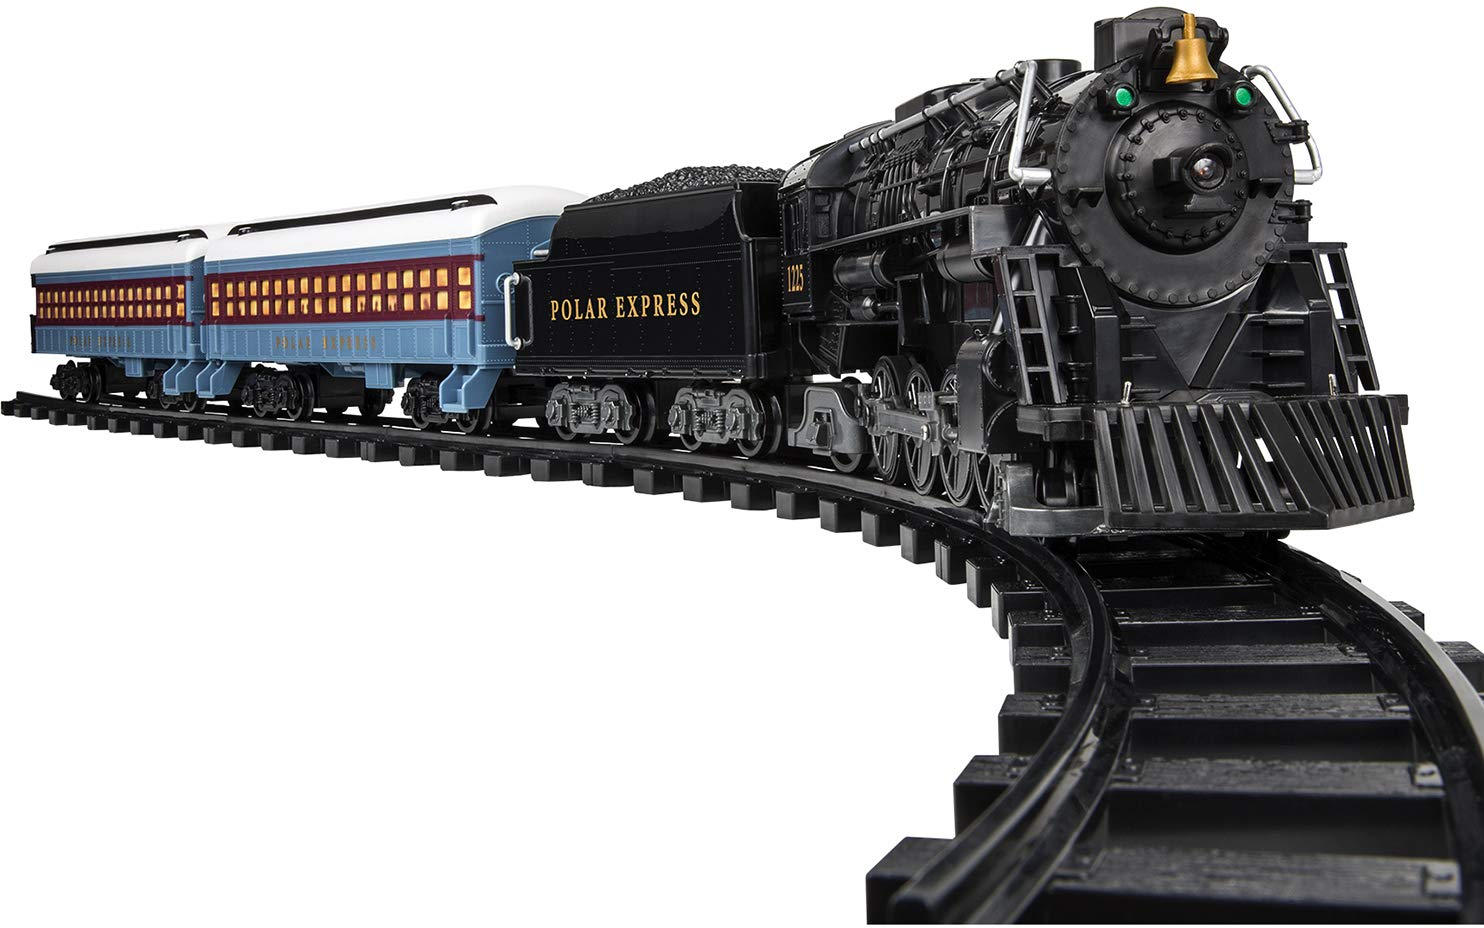 Lionel The Polar Express Battery-powered Model Train Set Ready to Play w/ Remote by Lionel